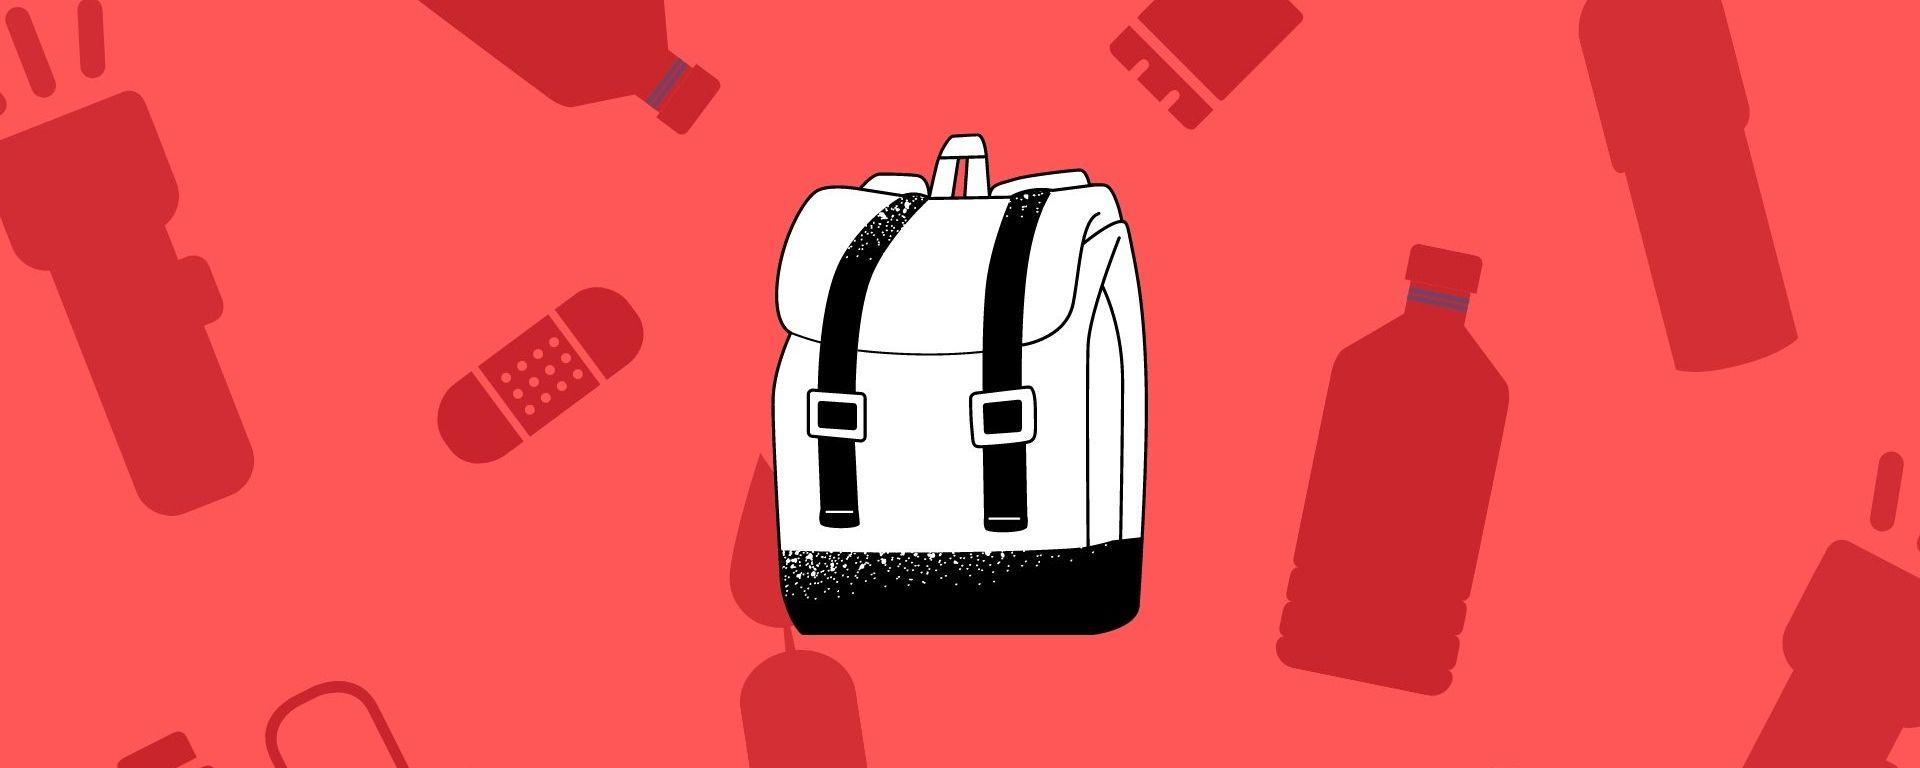 An image with a red background, a black and white backpack and dark red survival items surrounding it.